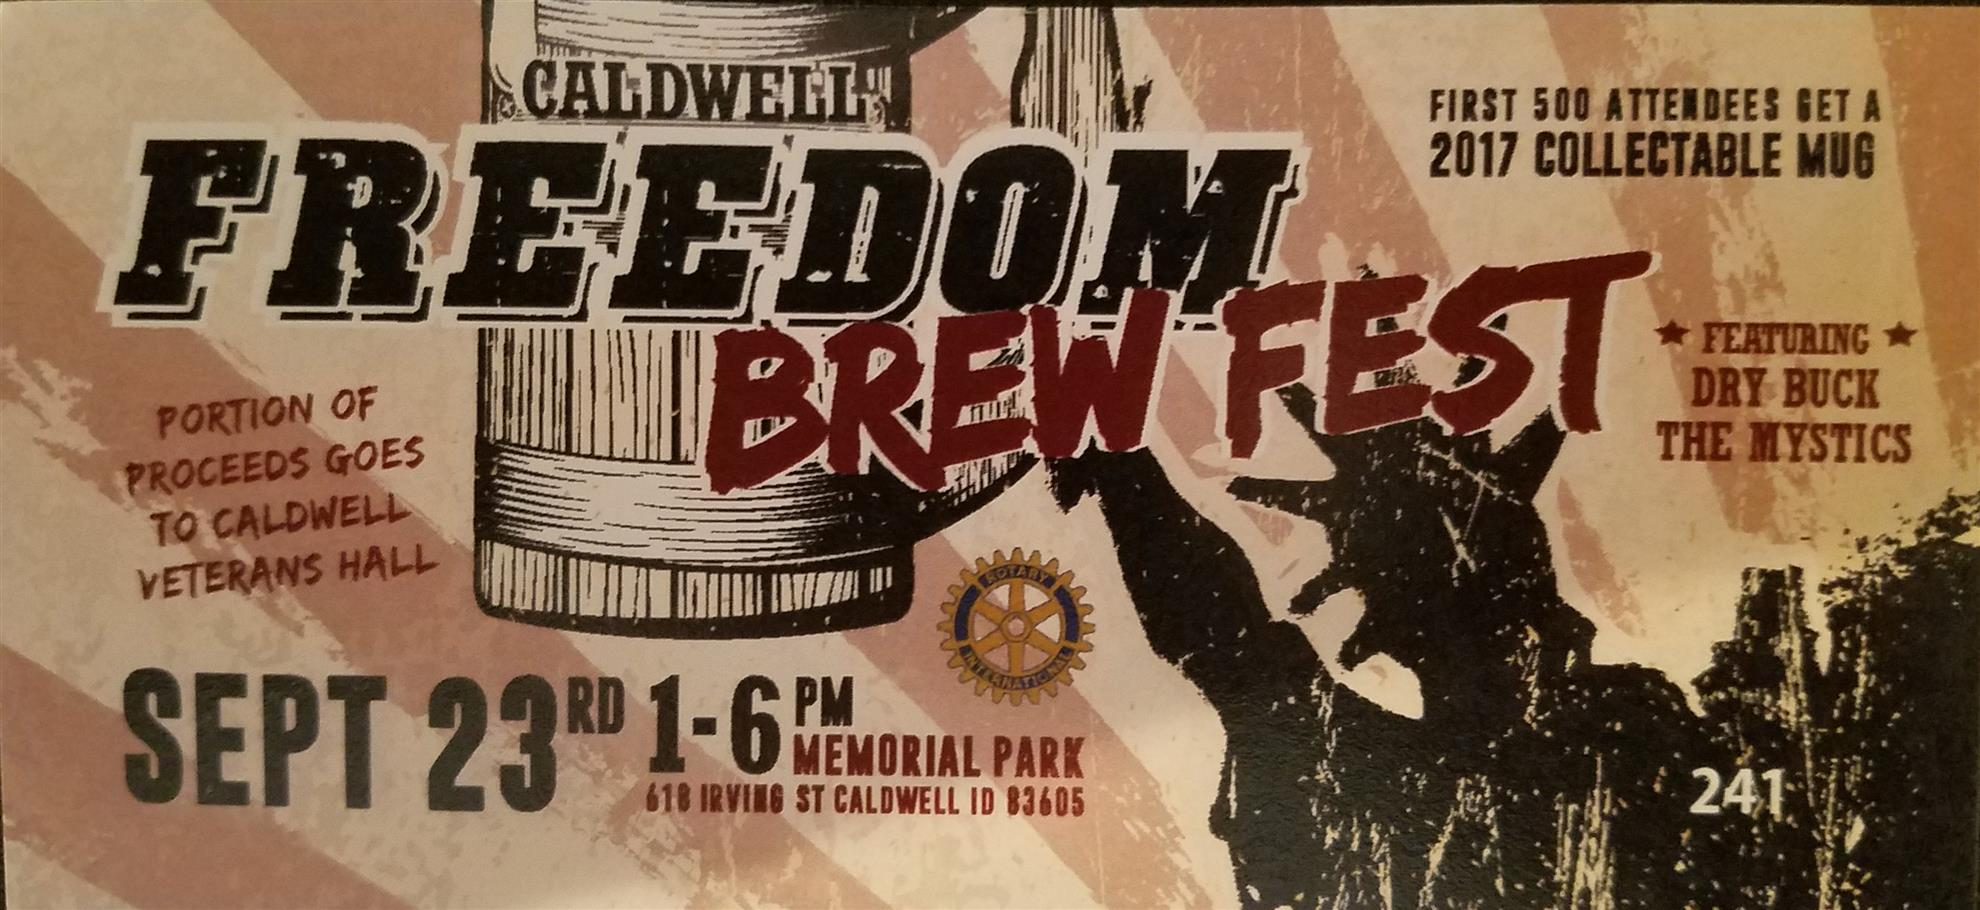 Our Caldwell Freedom Brew Fest Is This Coming Saturday September 23rd From 1 6pm At Memorial Park We Need Your Help In The Following Areas